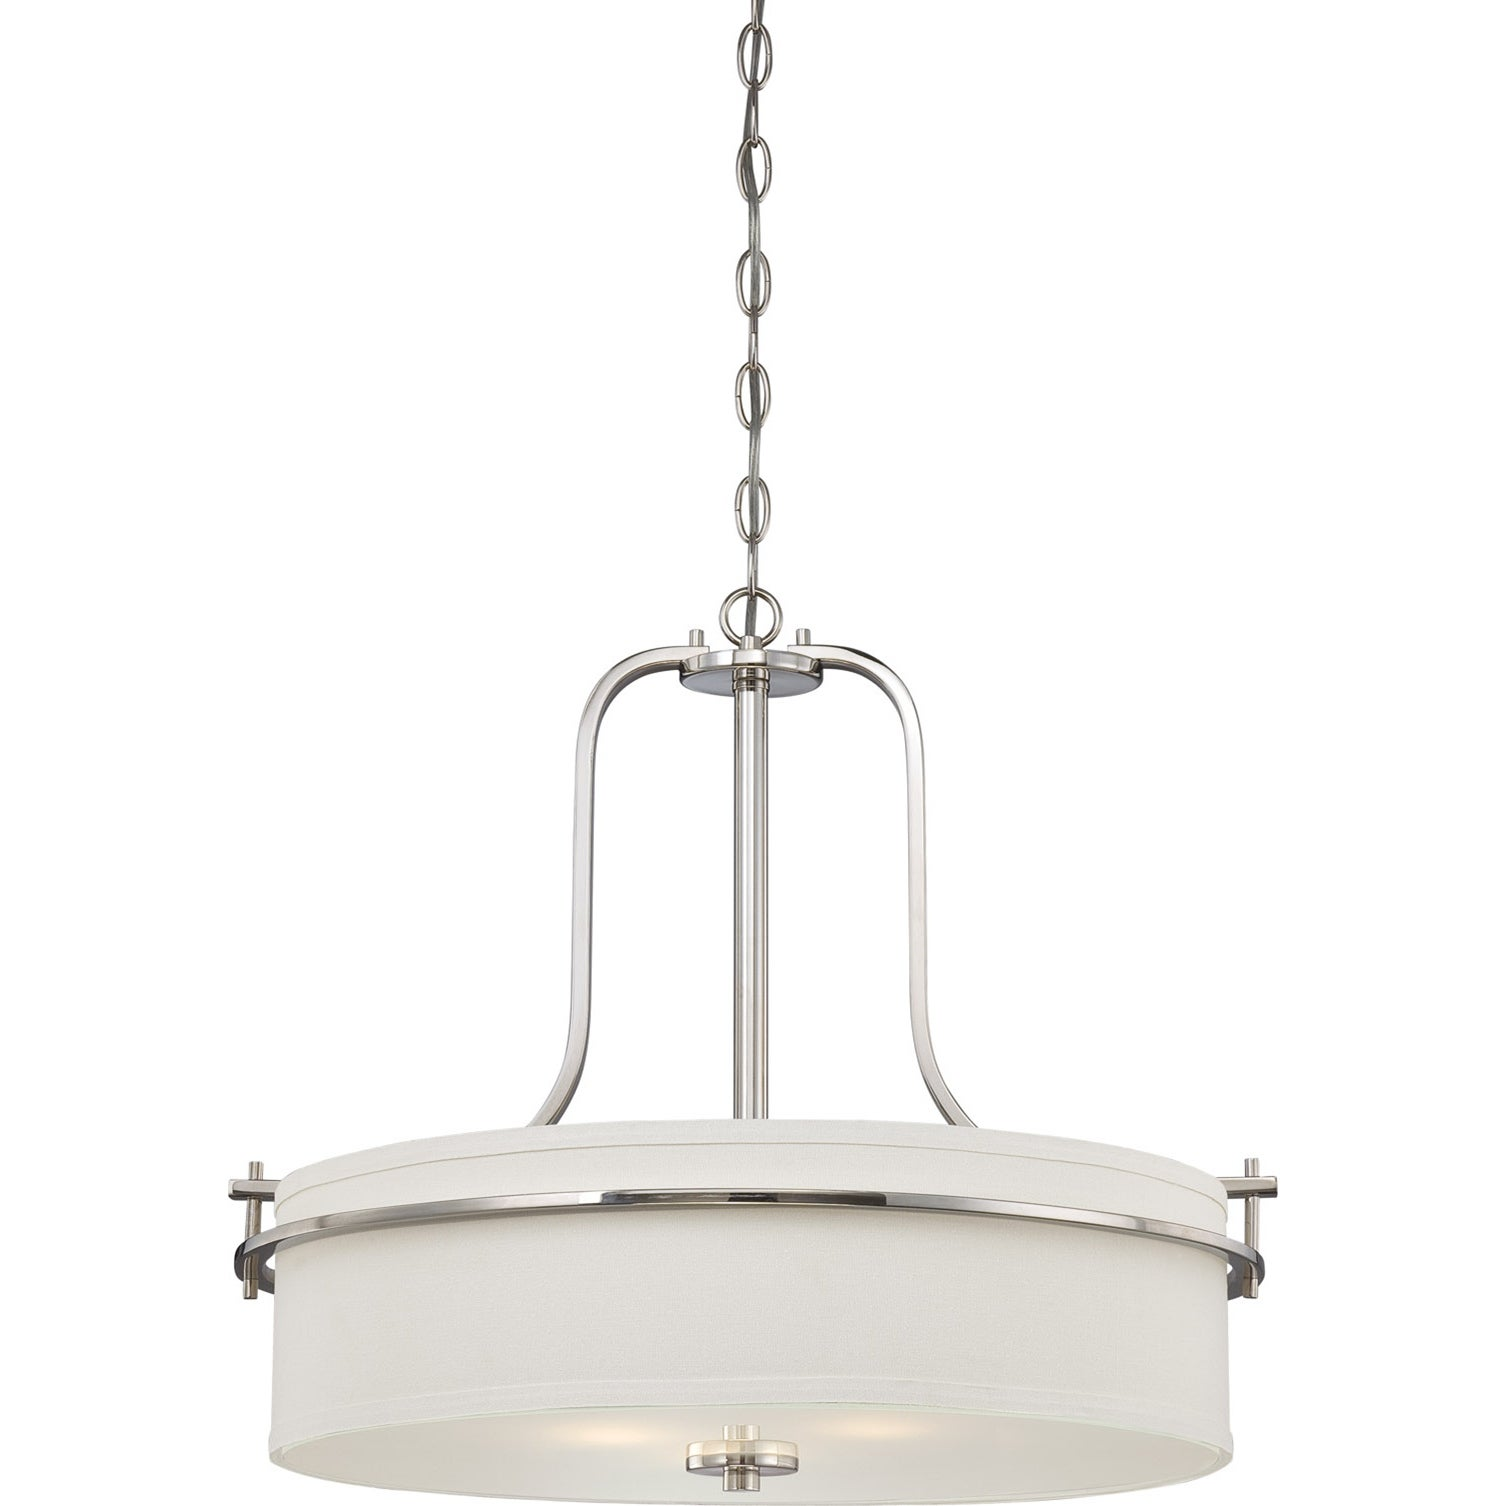 Nuvo Loren 3-light Polished Nickel Pendant